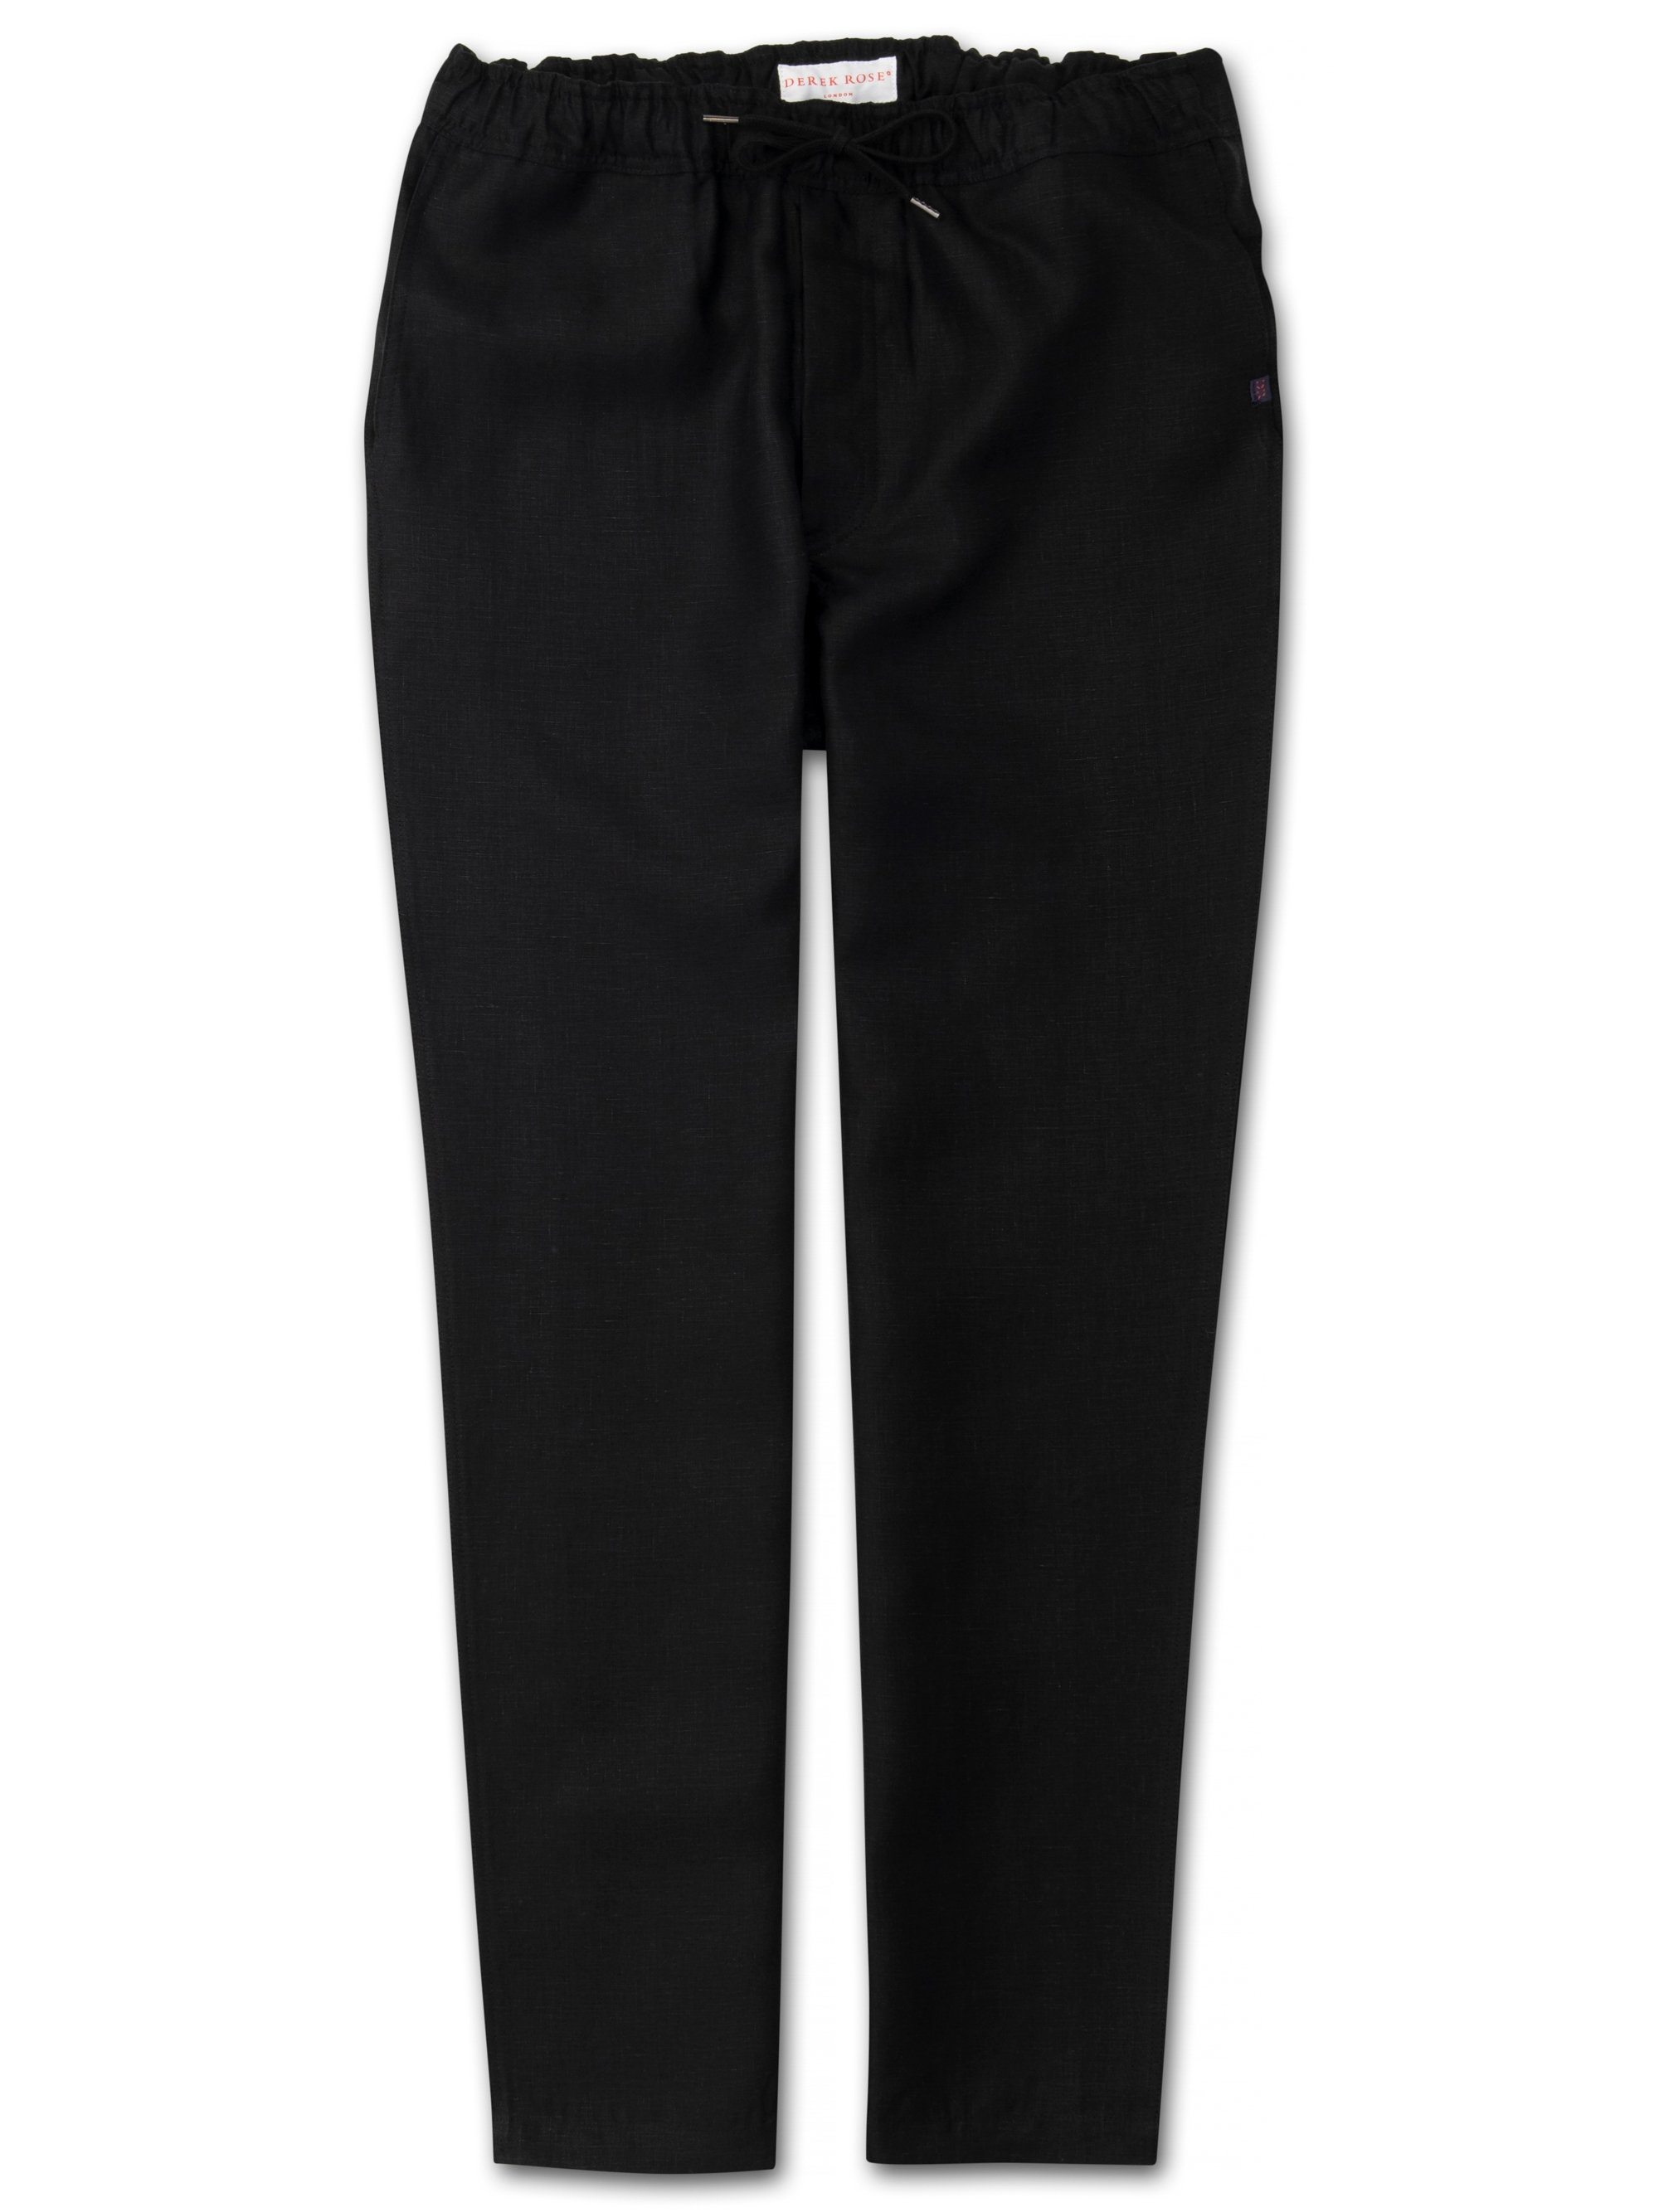 Men's Linen Trousers Sydney Linen Black